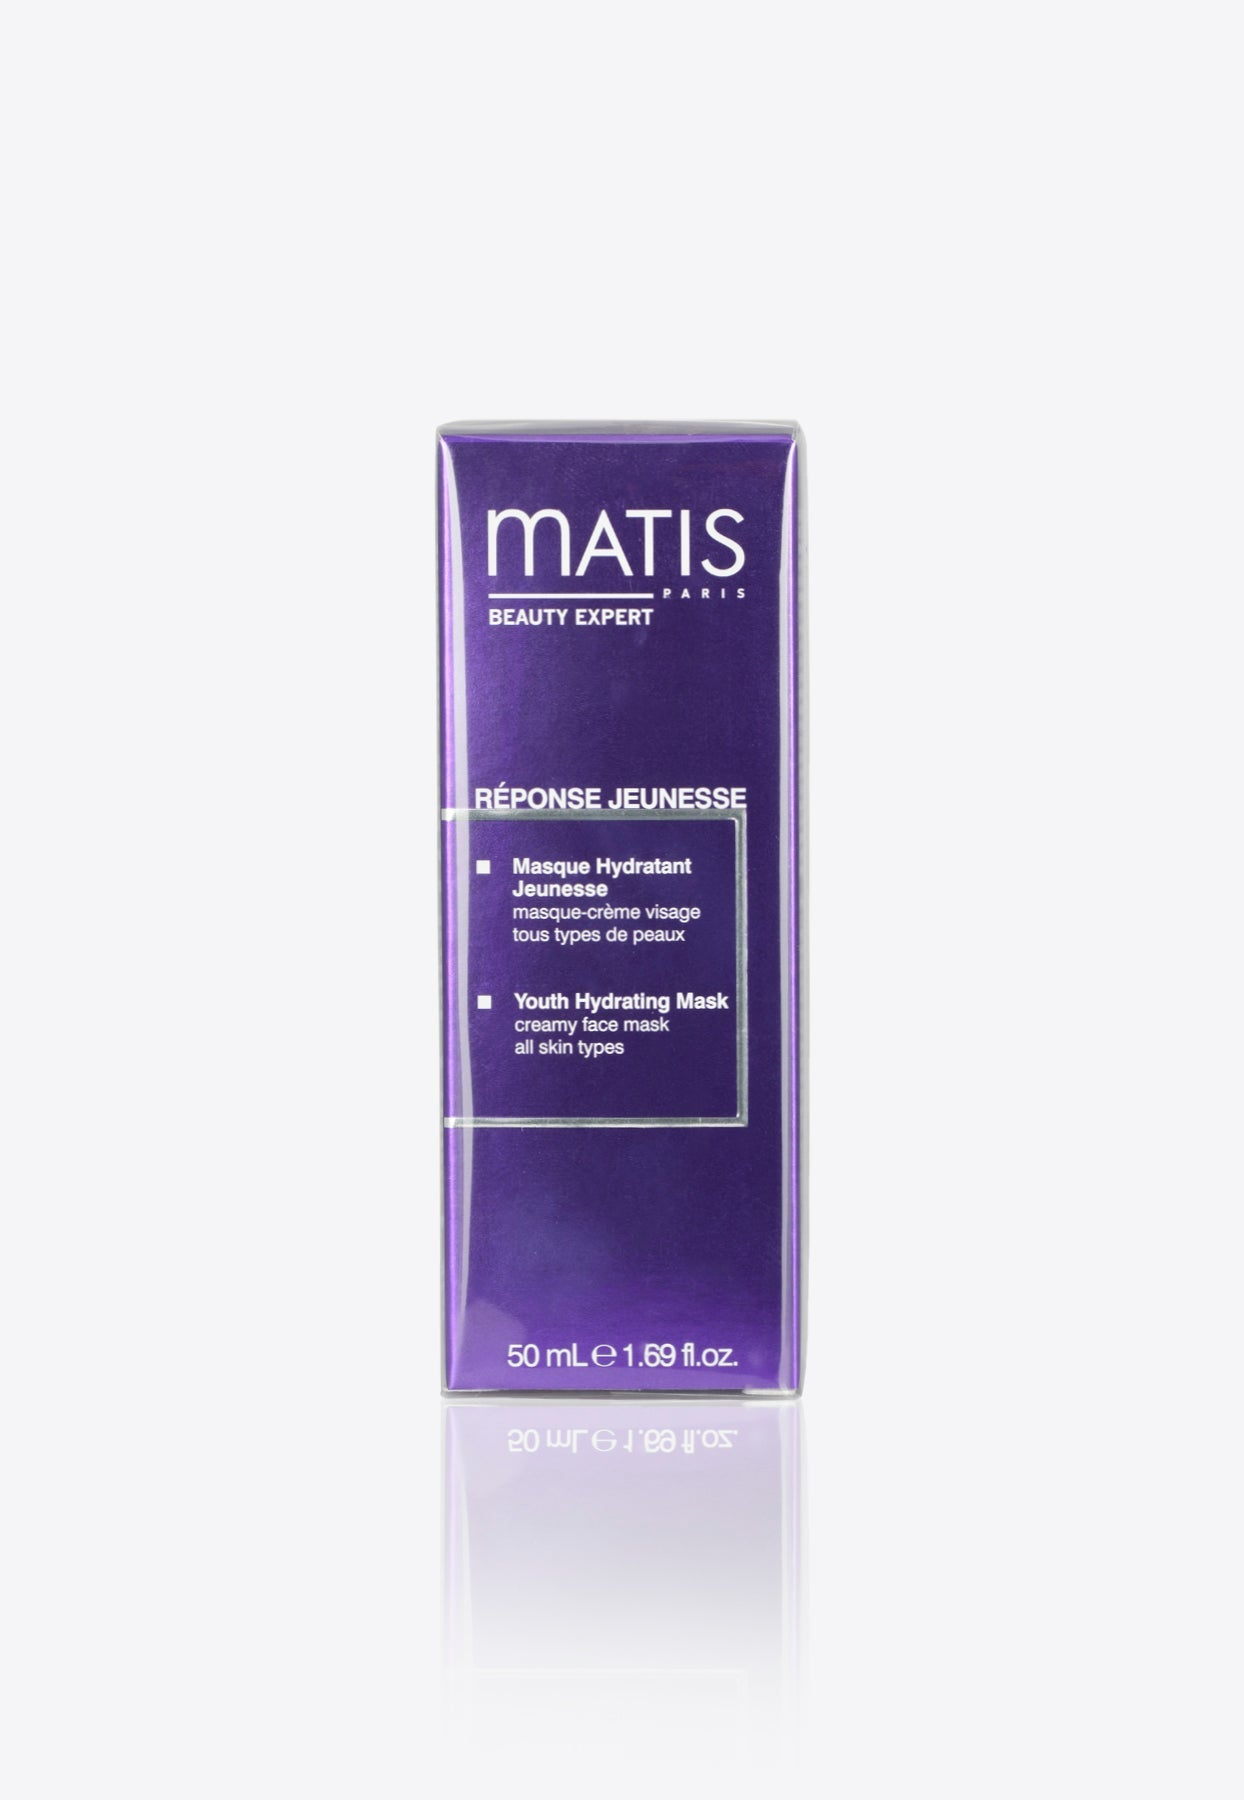 Matis Paris Réponse Jeunesse Youth Hydrating Face Mask - 50 ml In White